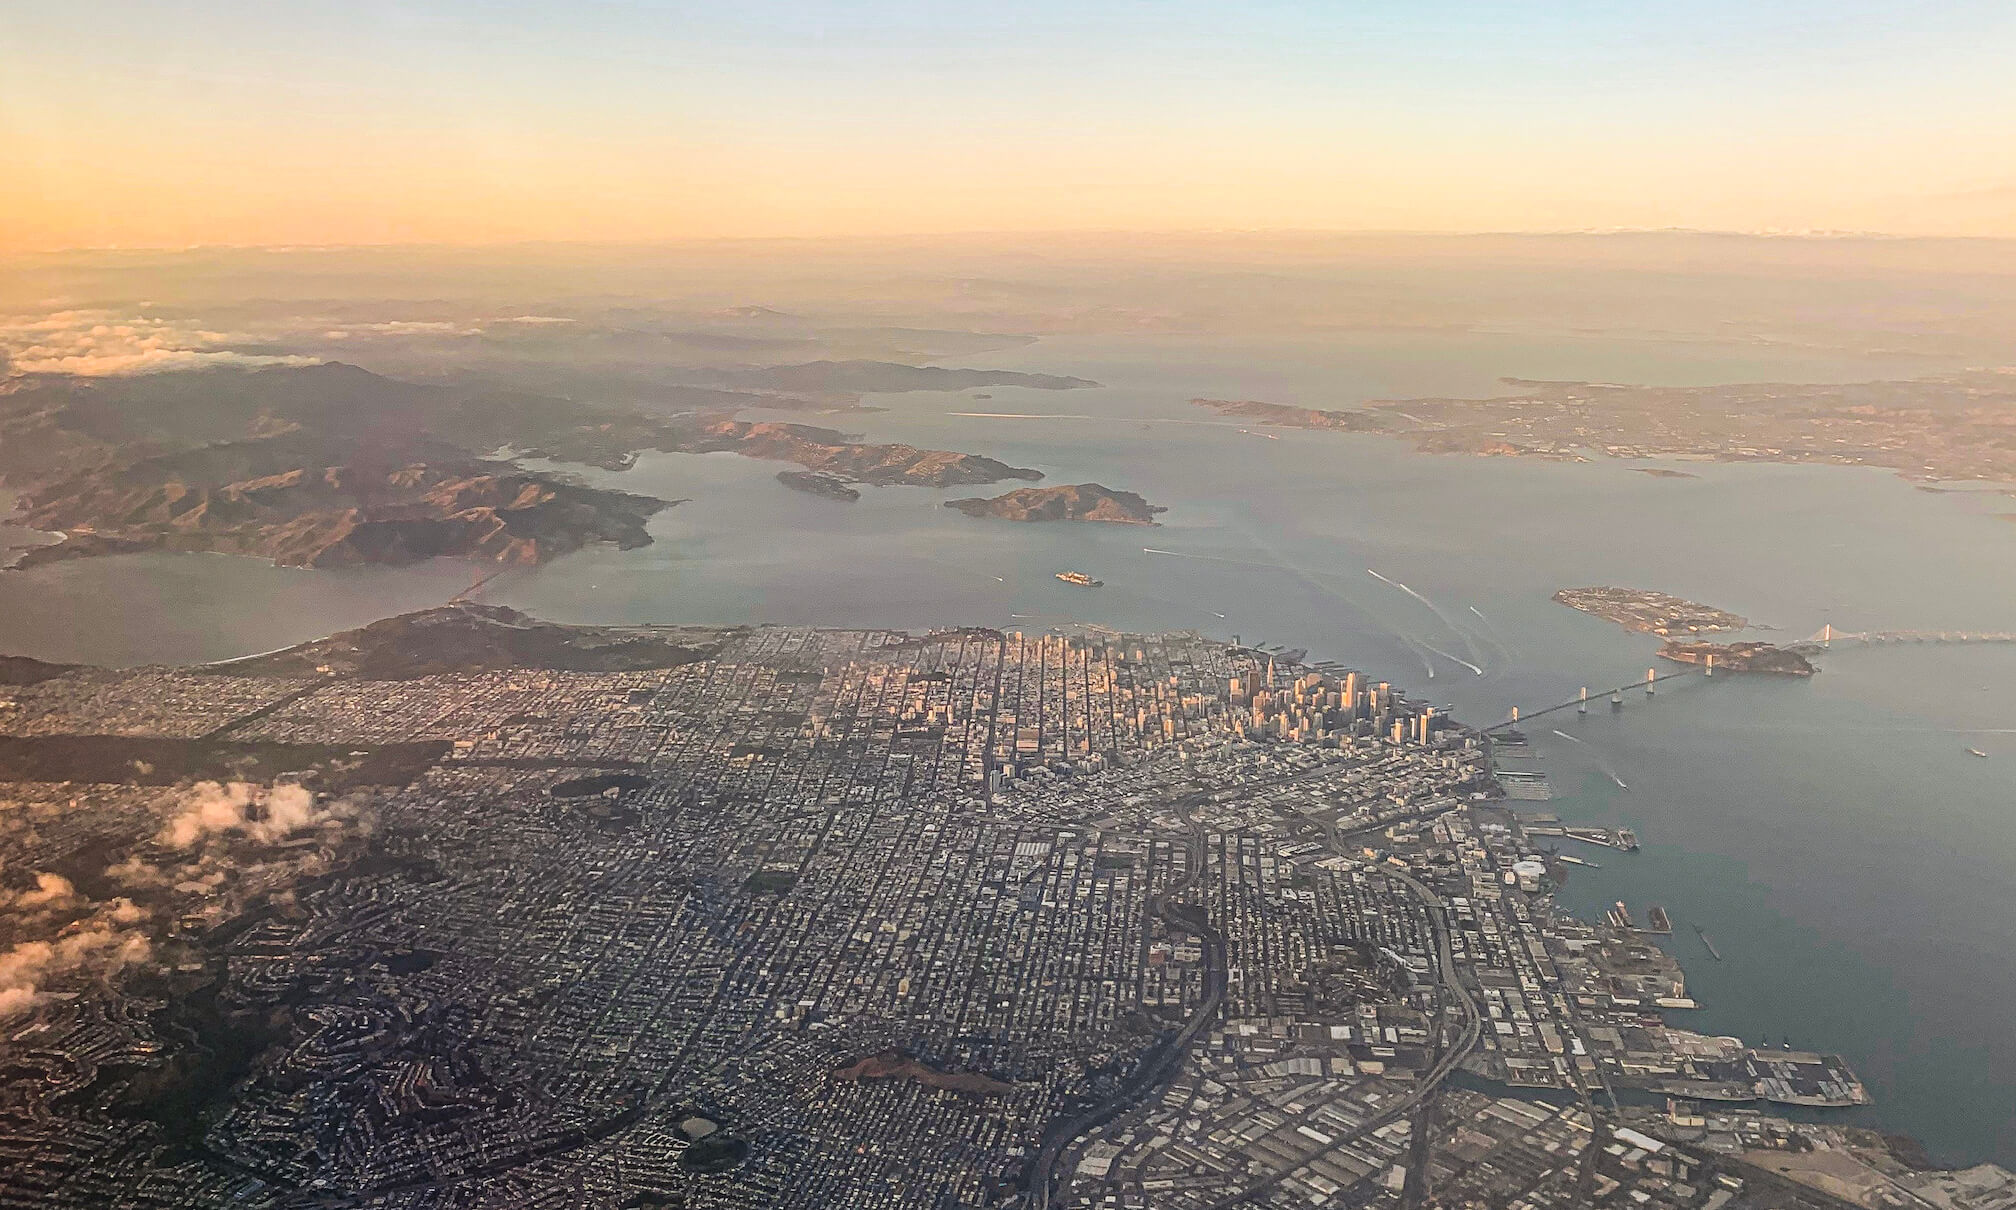 Courtney Sabo aerial shot of San Francisco from a plane